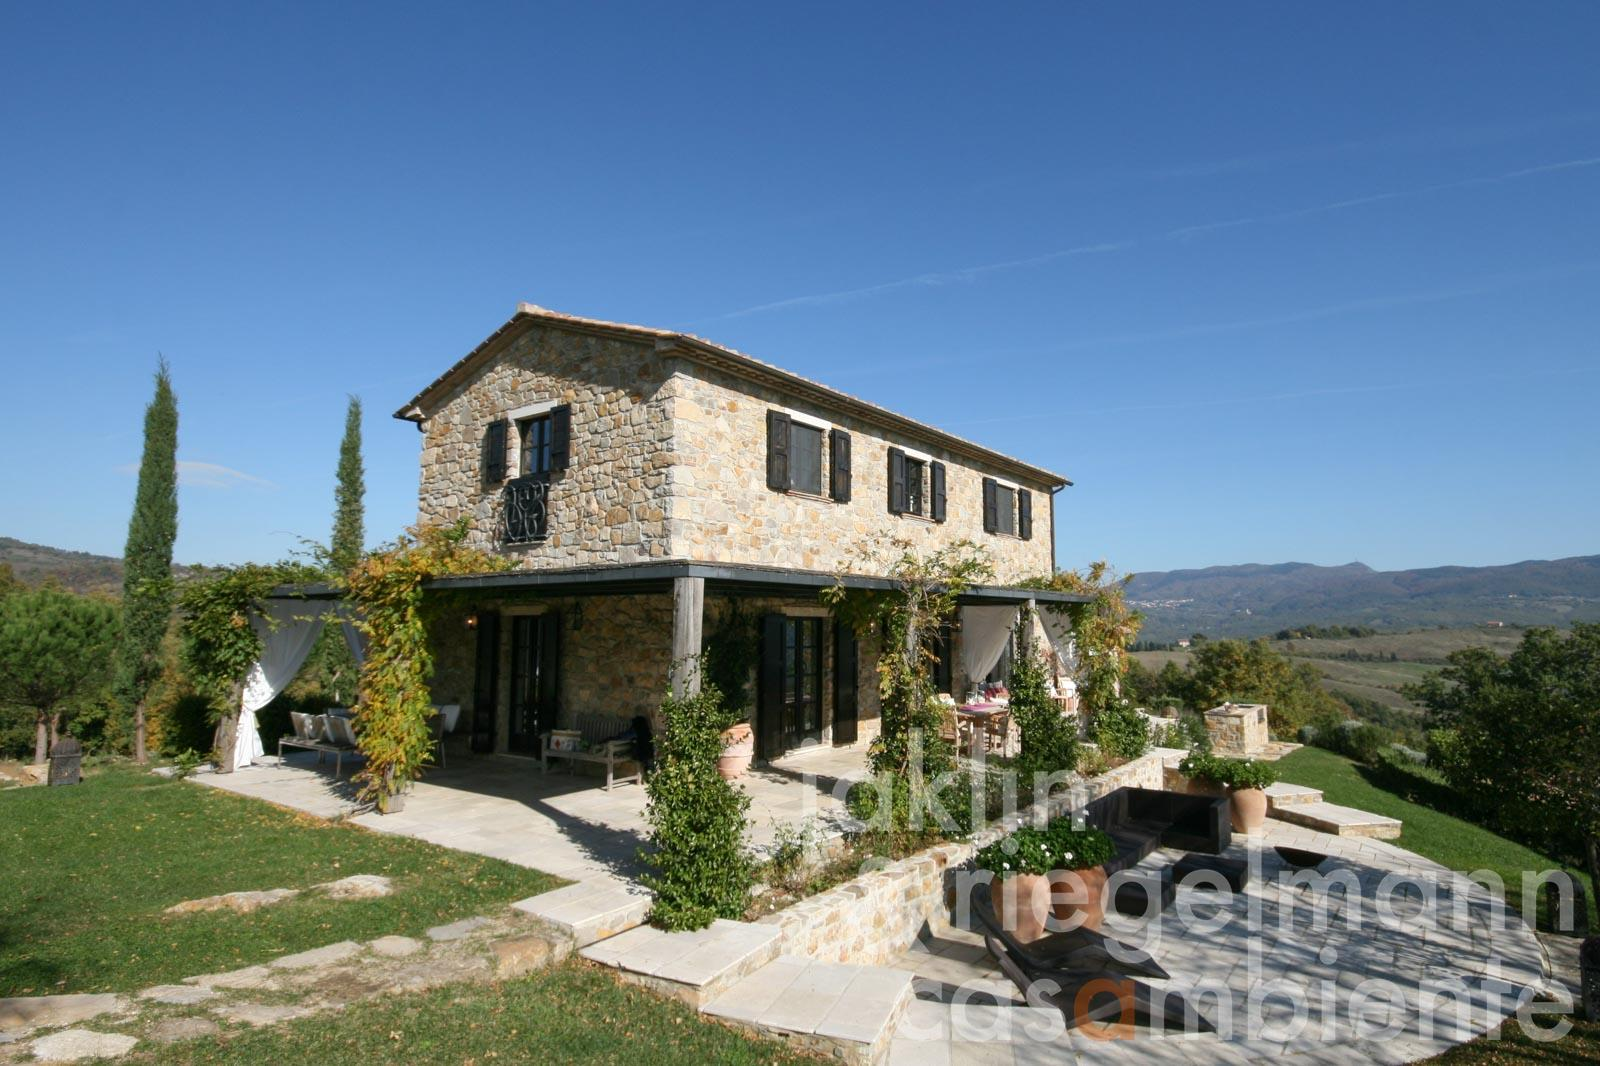 The modern Tuscan country estate for sale in the Maremma region with two houses, swimming pool and olive grove